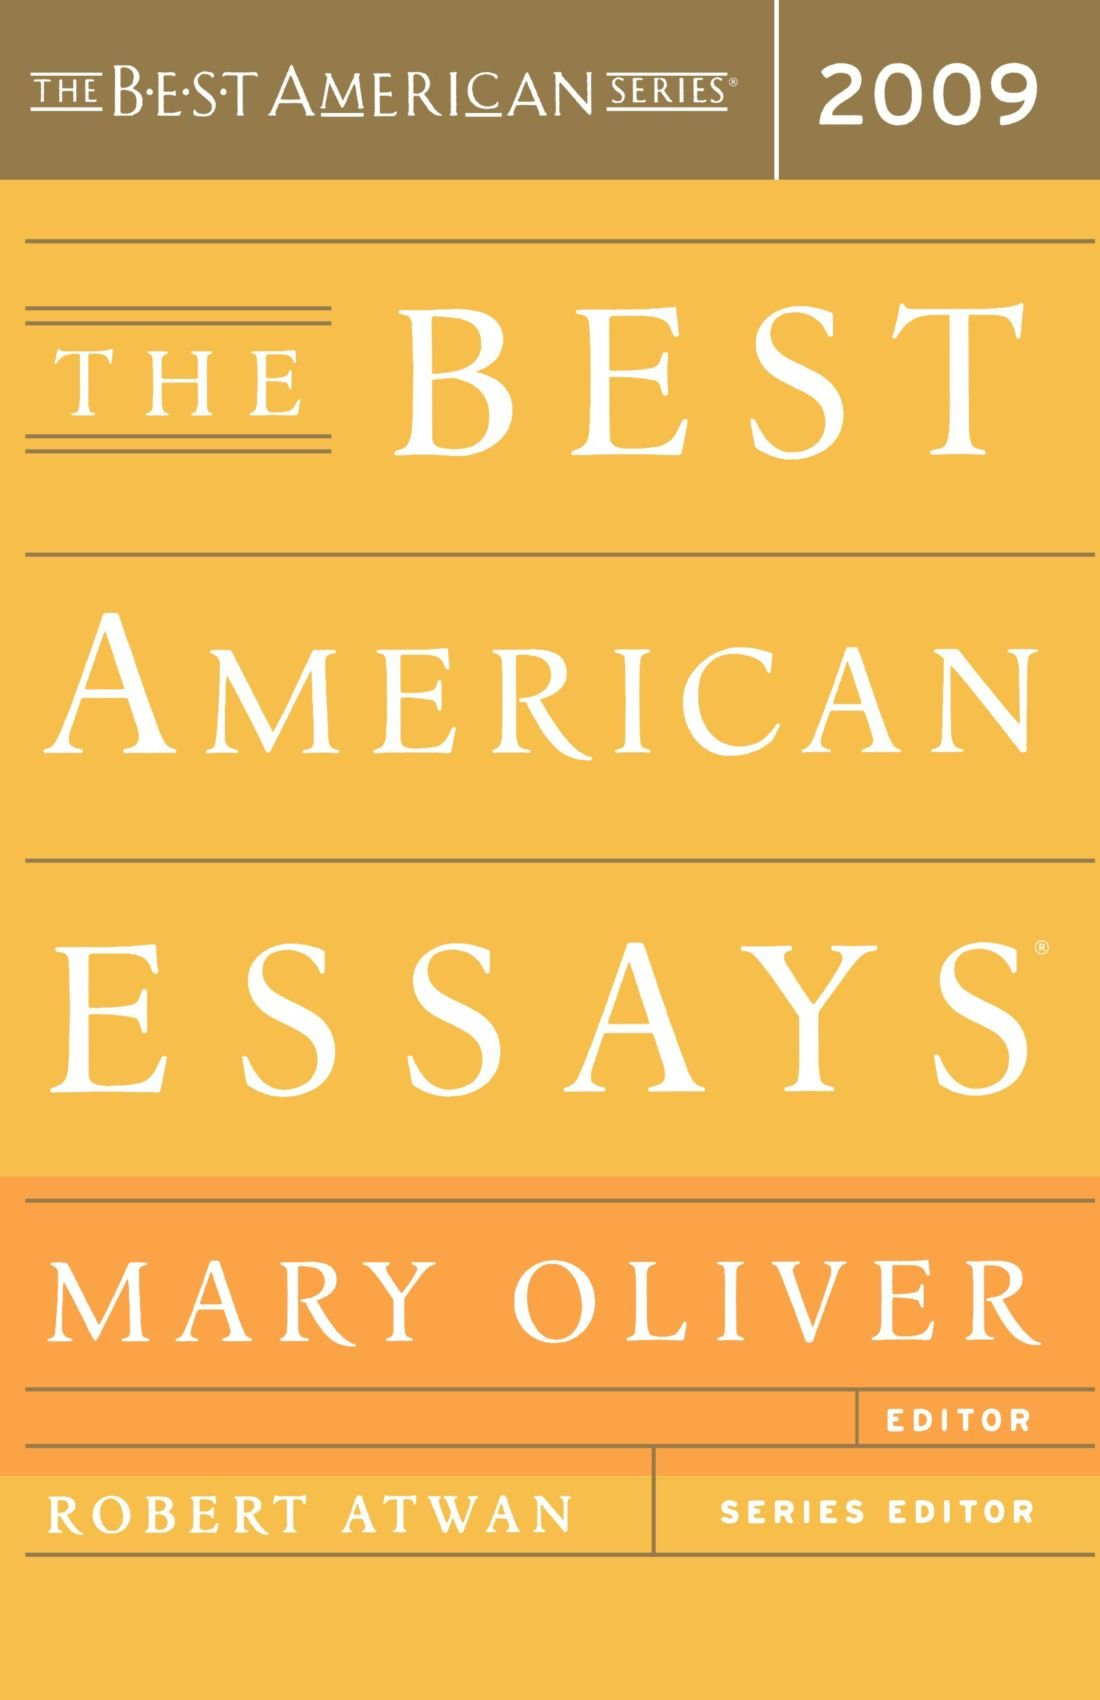 008 617qb5slhfl Essay Example The Best American Wonderful Essays 2013 Pdf Download Of Century Sparknotes 2017 Full